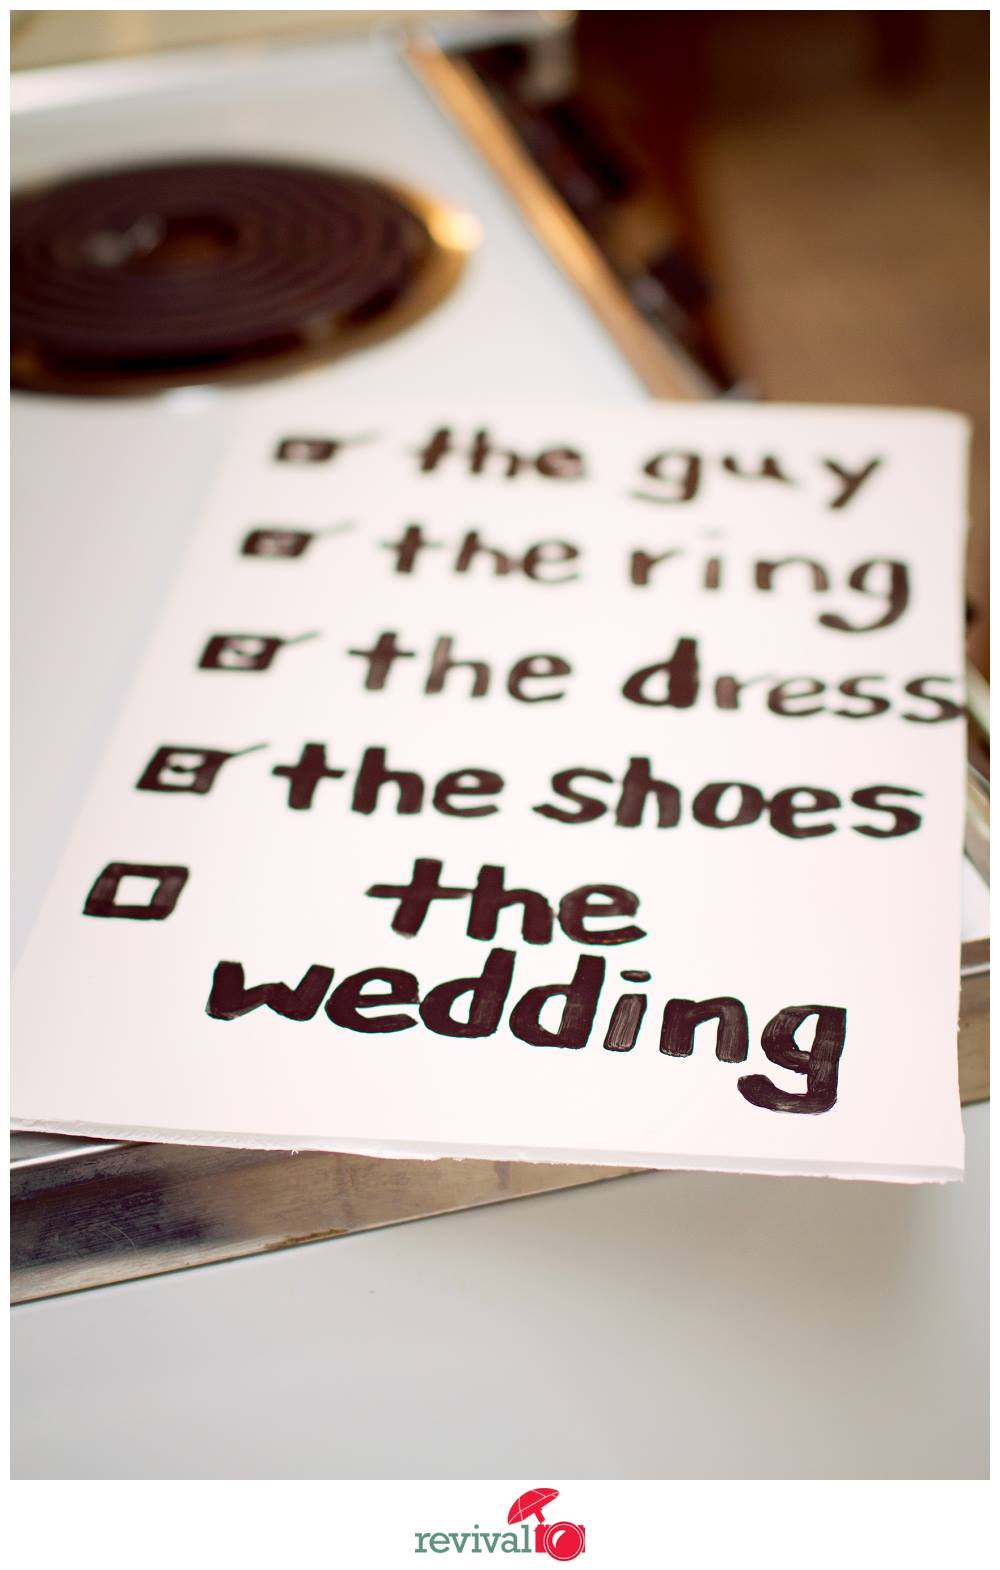 Top 10 Wedding Tips from March's Wedding Tips of the Day by Revival Photography